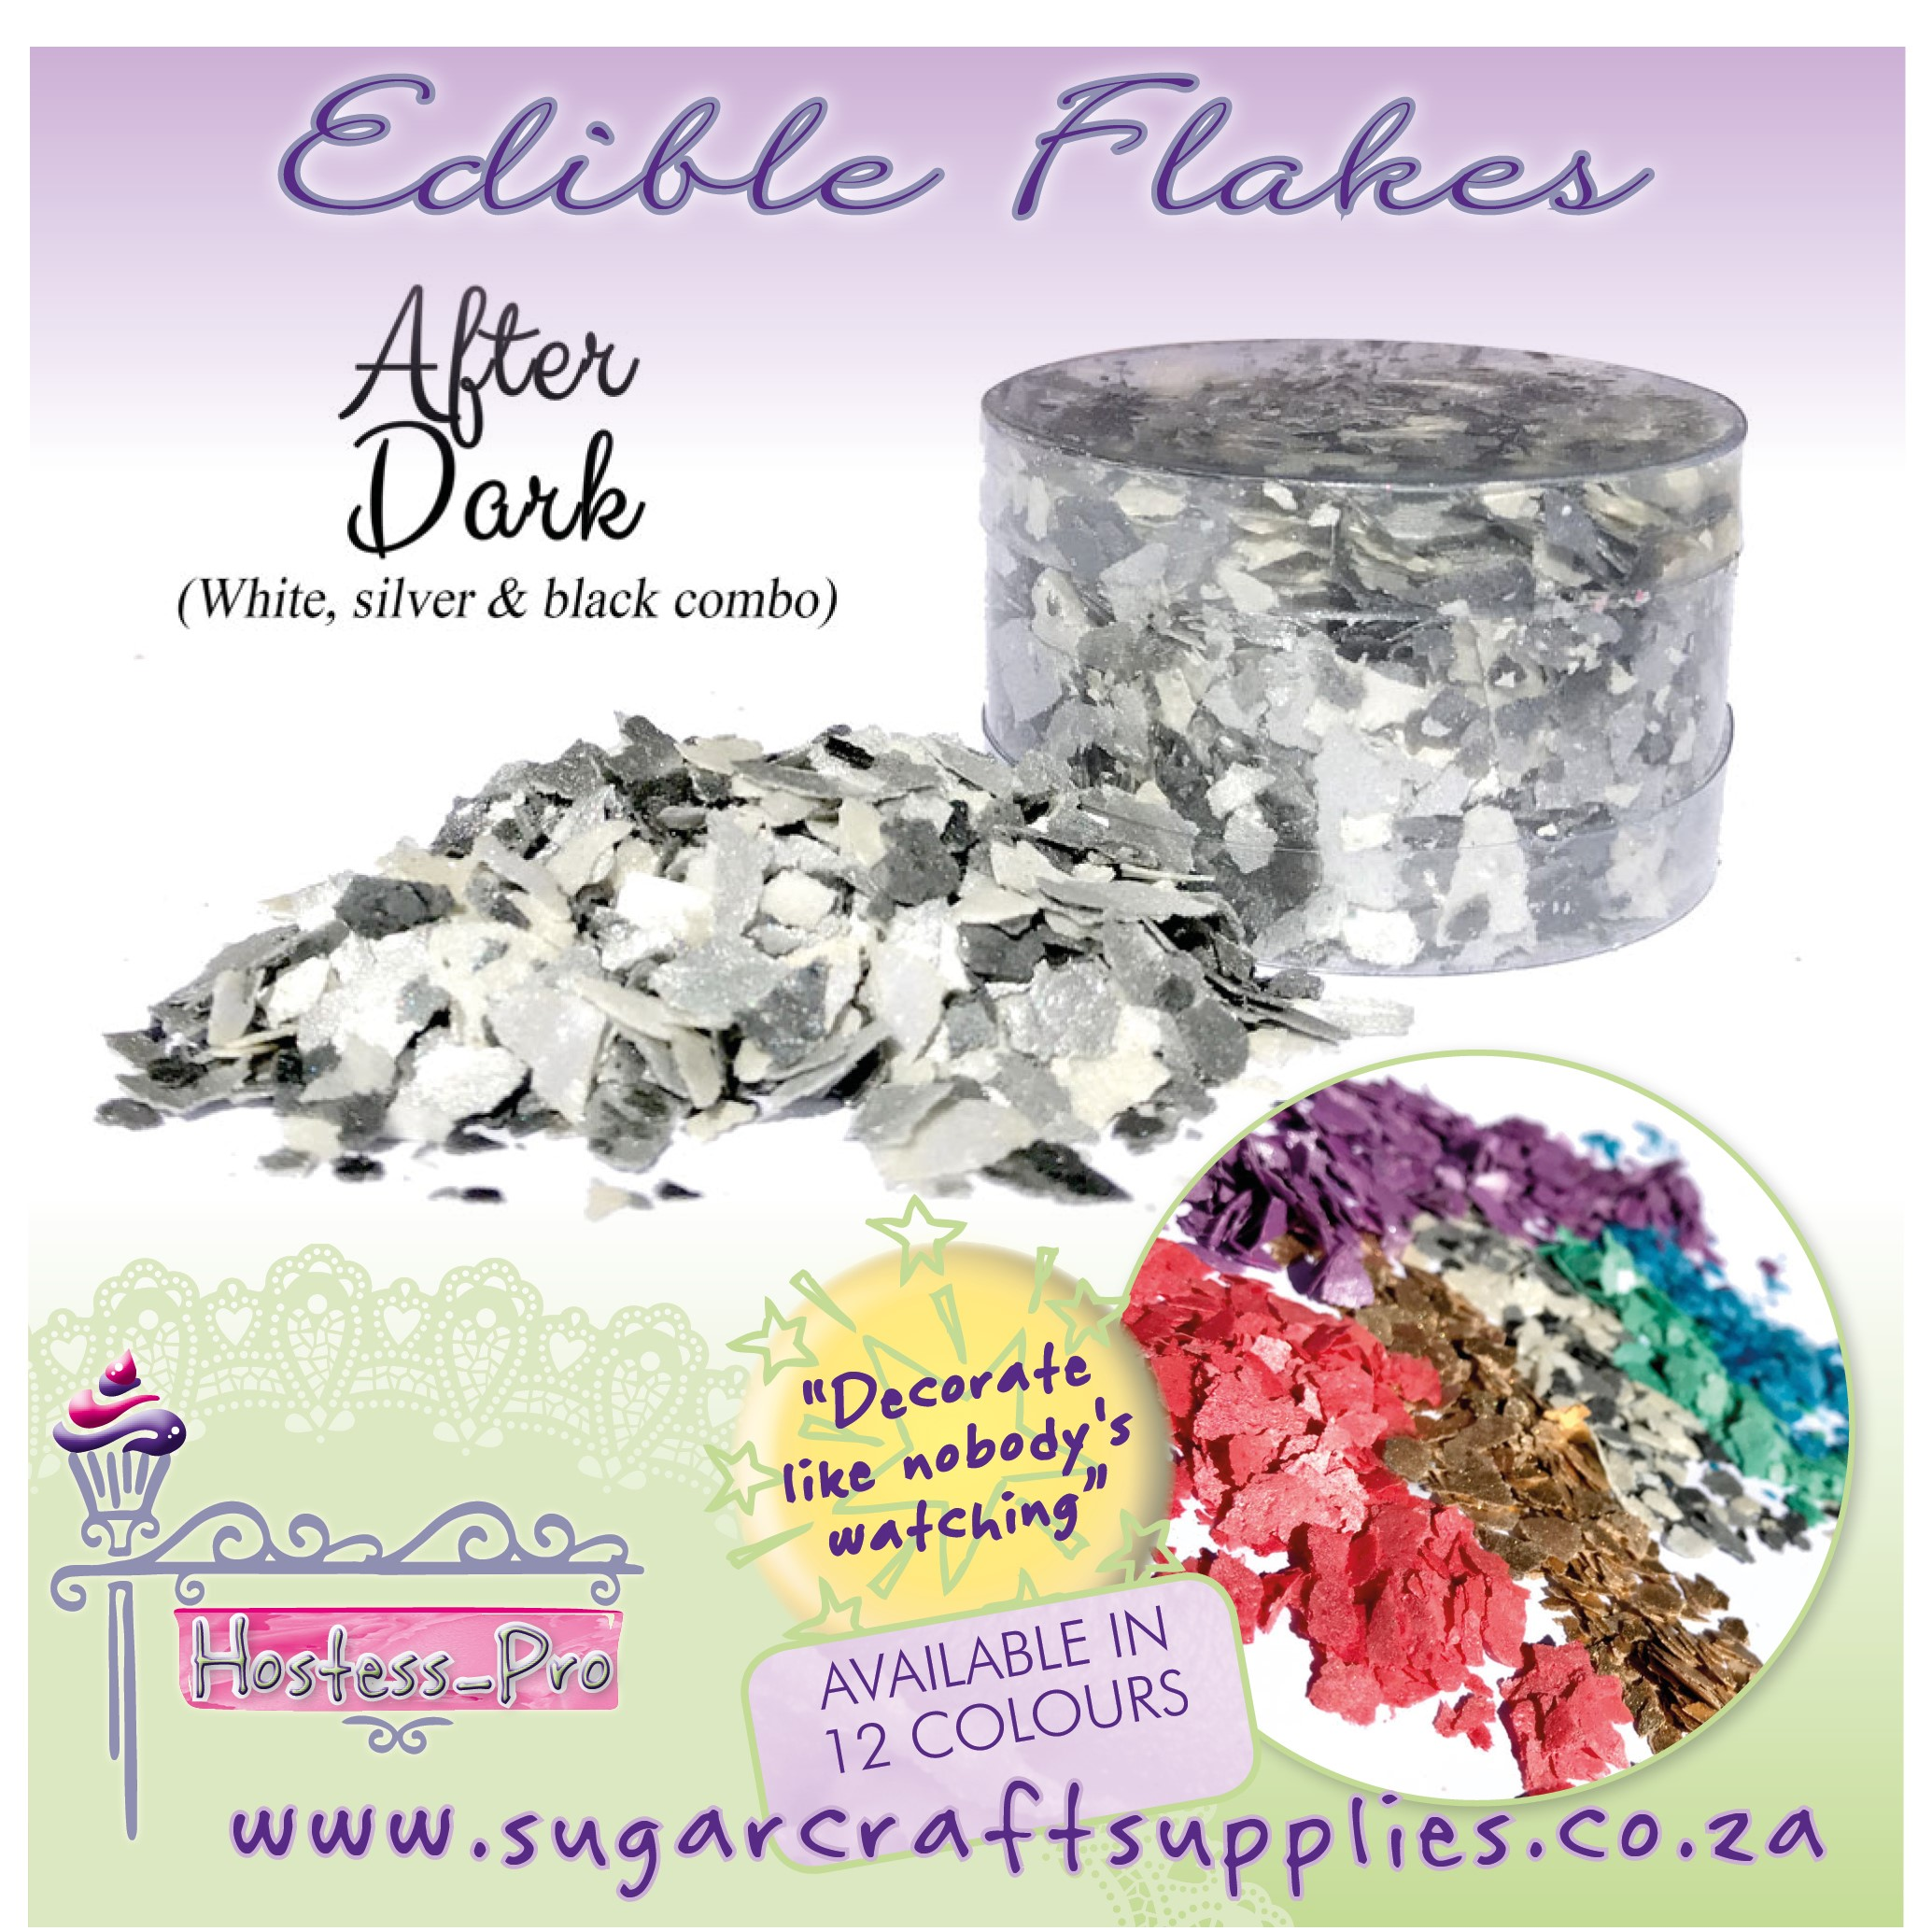 Edible Flakes_AFTER DARK